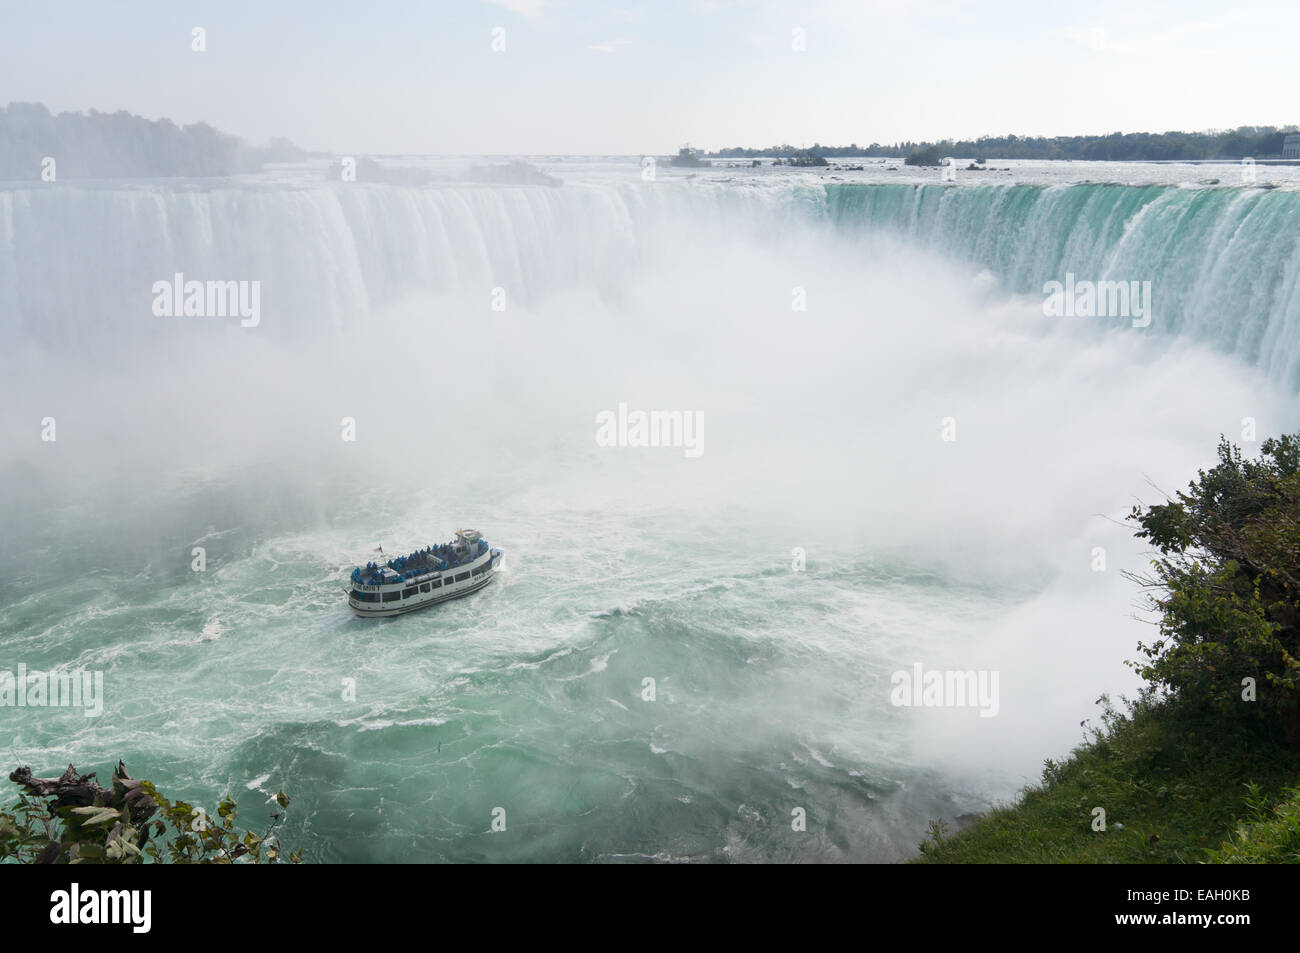 tourist-boat-maid-of-the-mist-at-the-bas